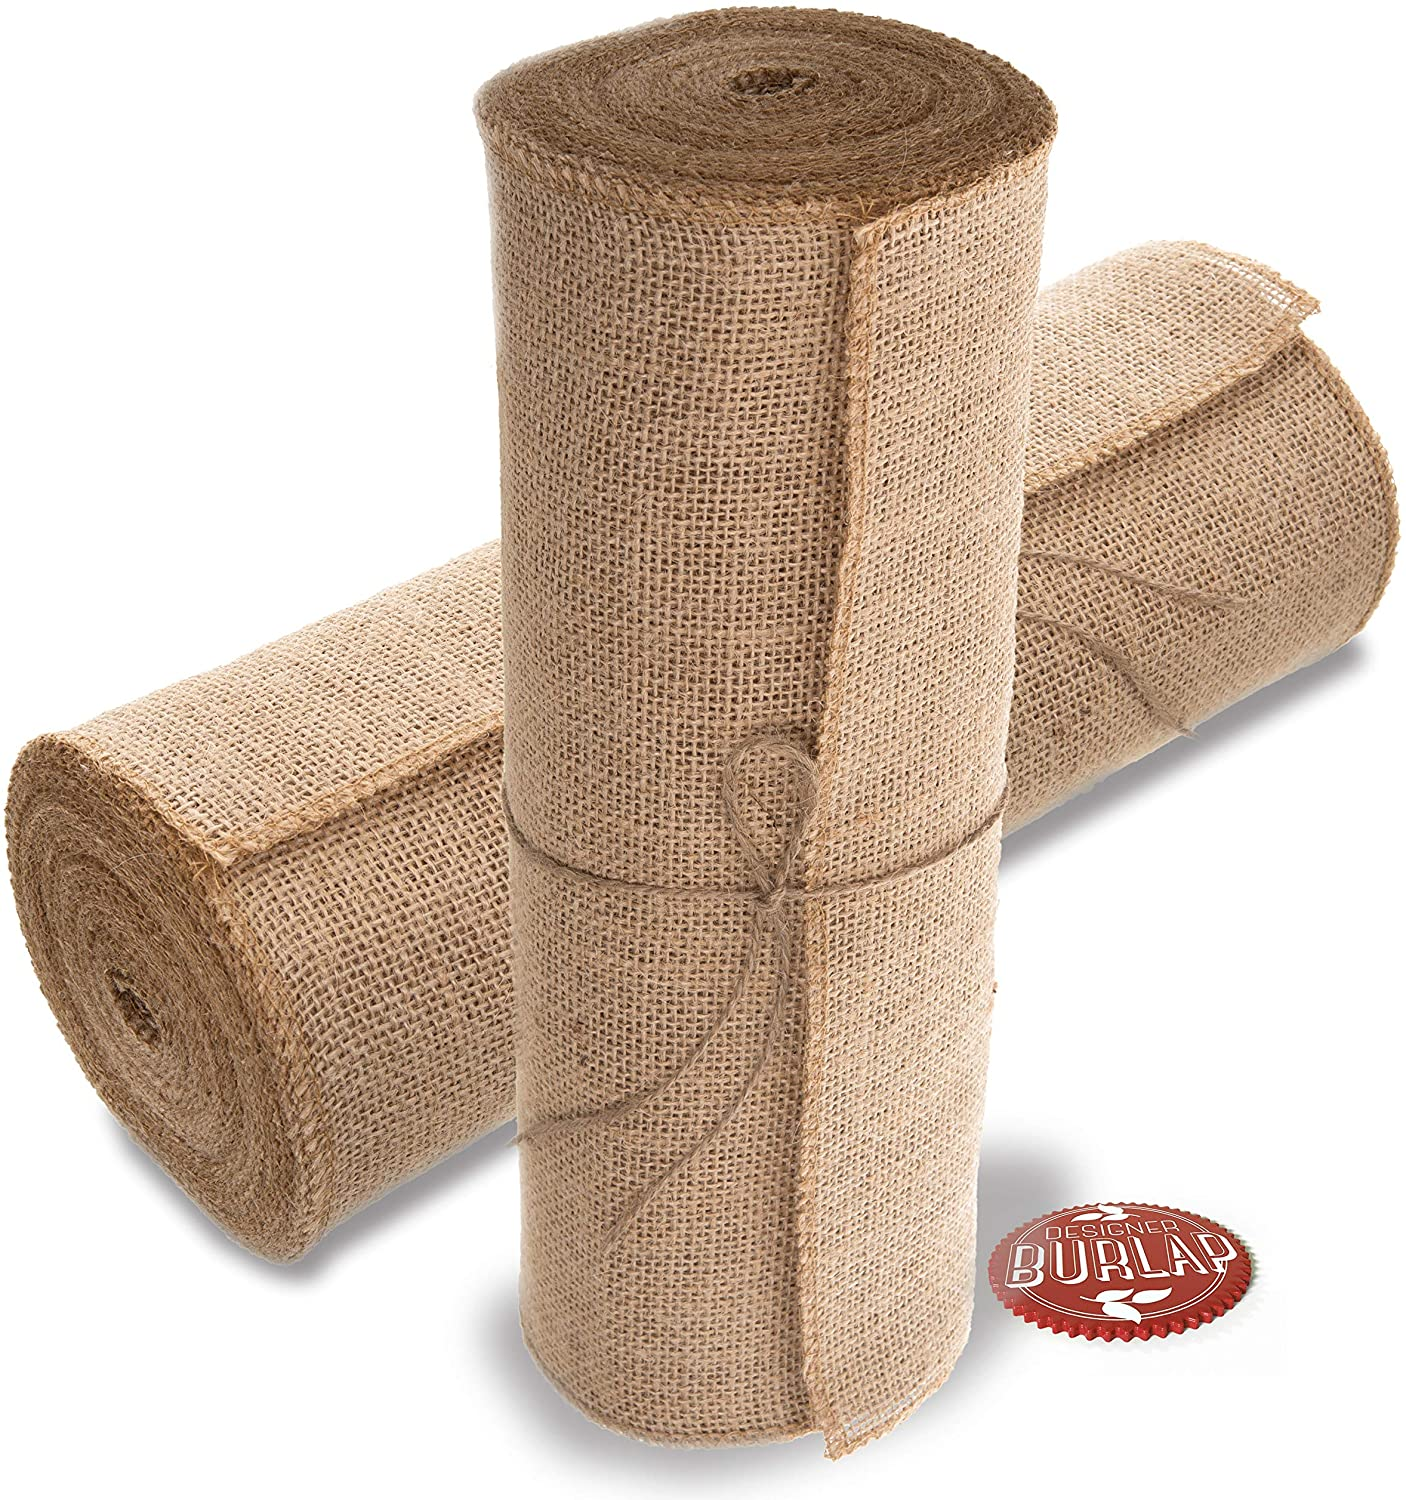 Burlap Table Runner - 14 Inch Wide X 10 Yards Long Burlap Roll